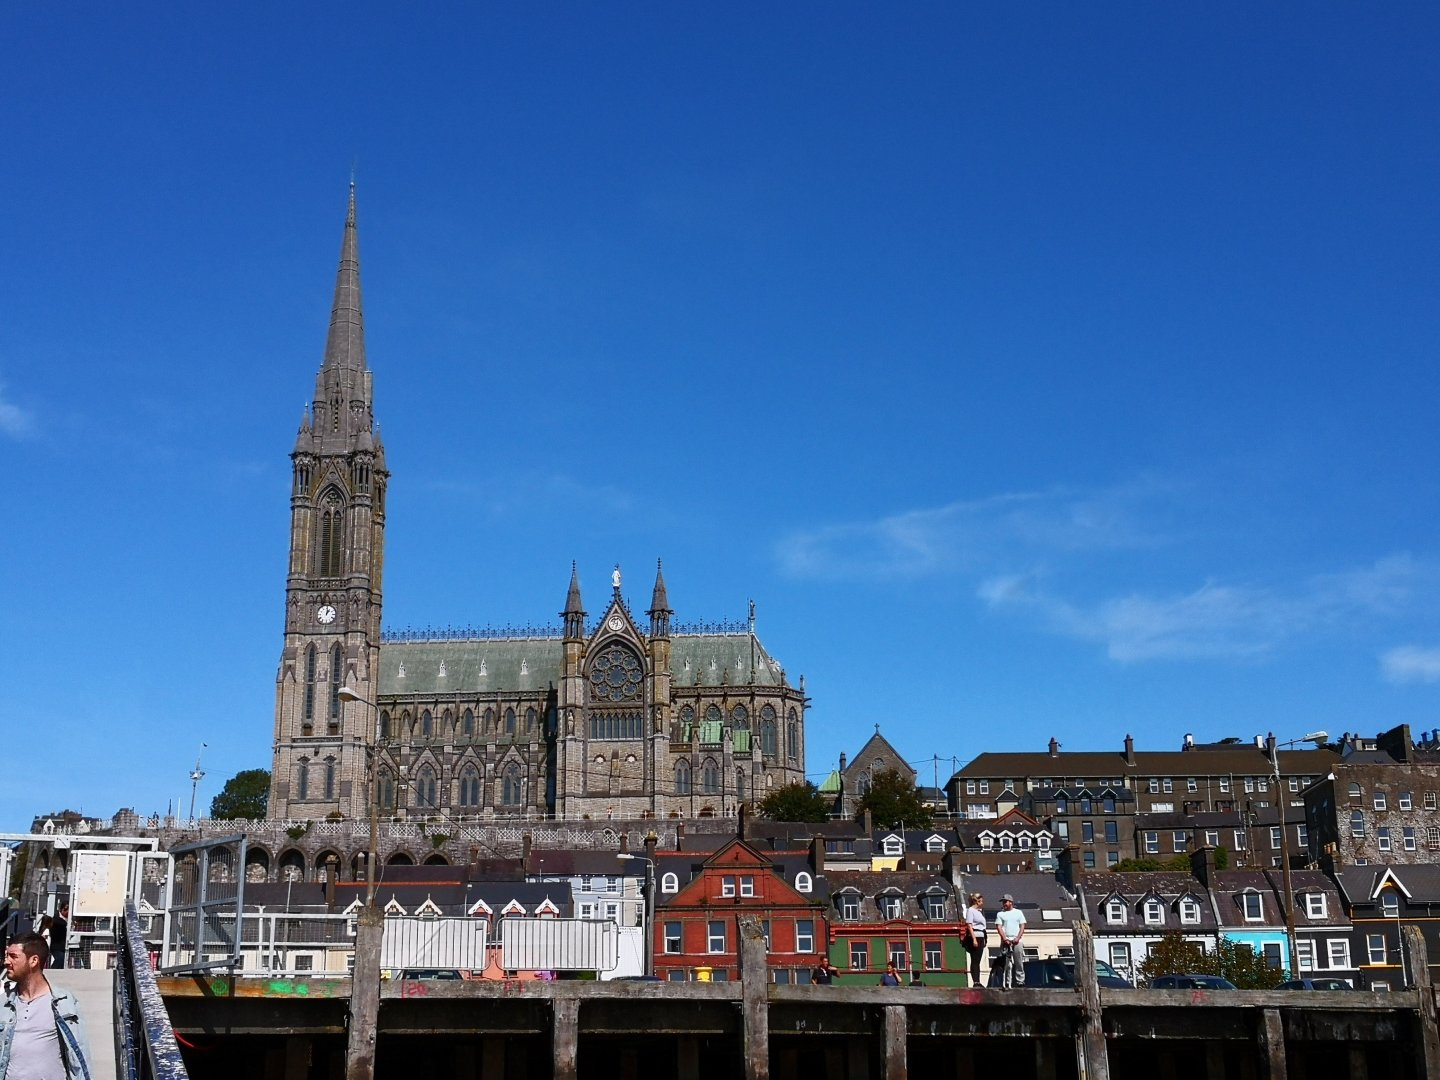 St Colmans Cathedral dominates the skyline at Cobh in Ireland as we approach across Cork Harbour.